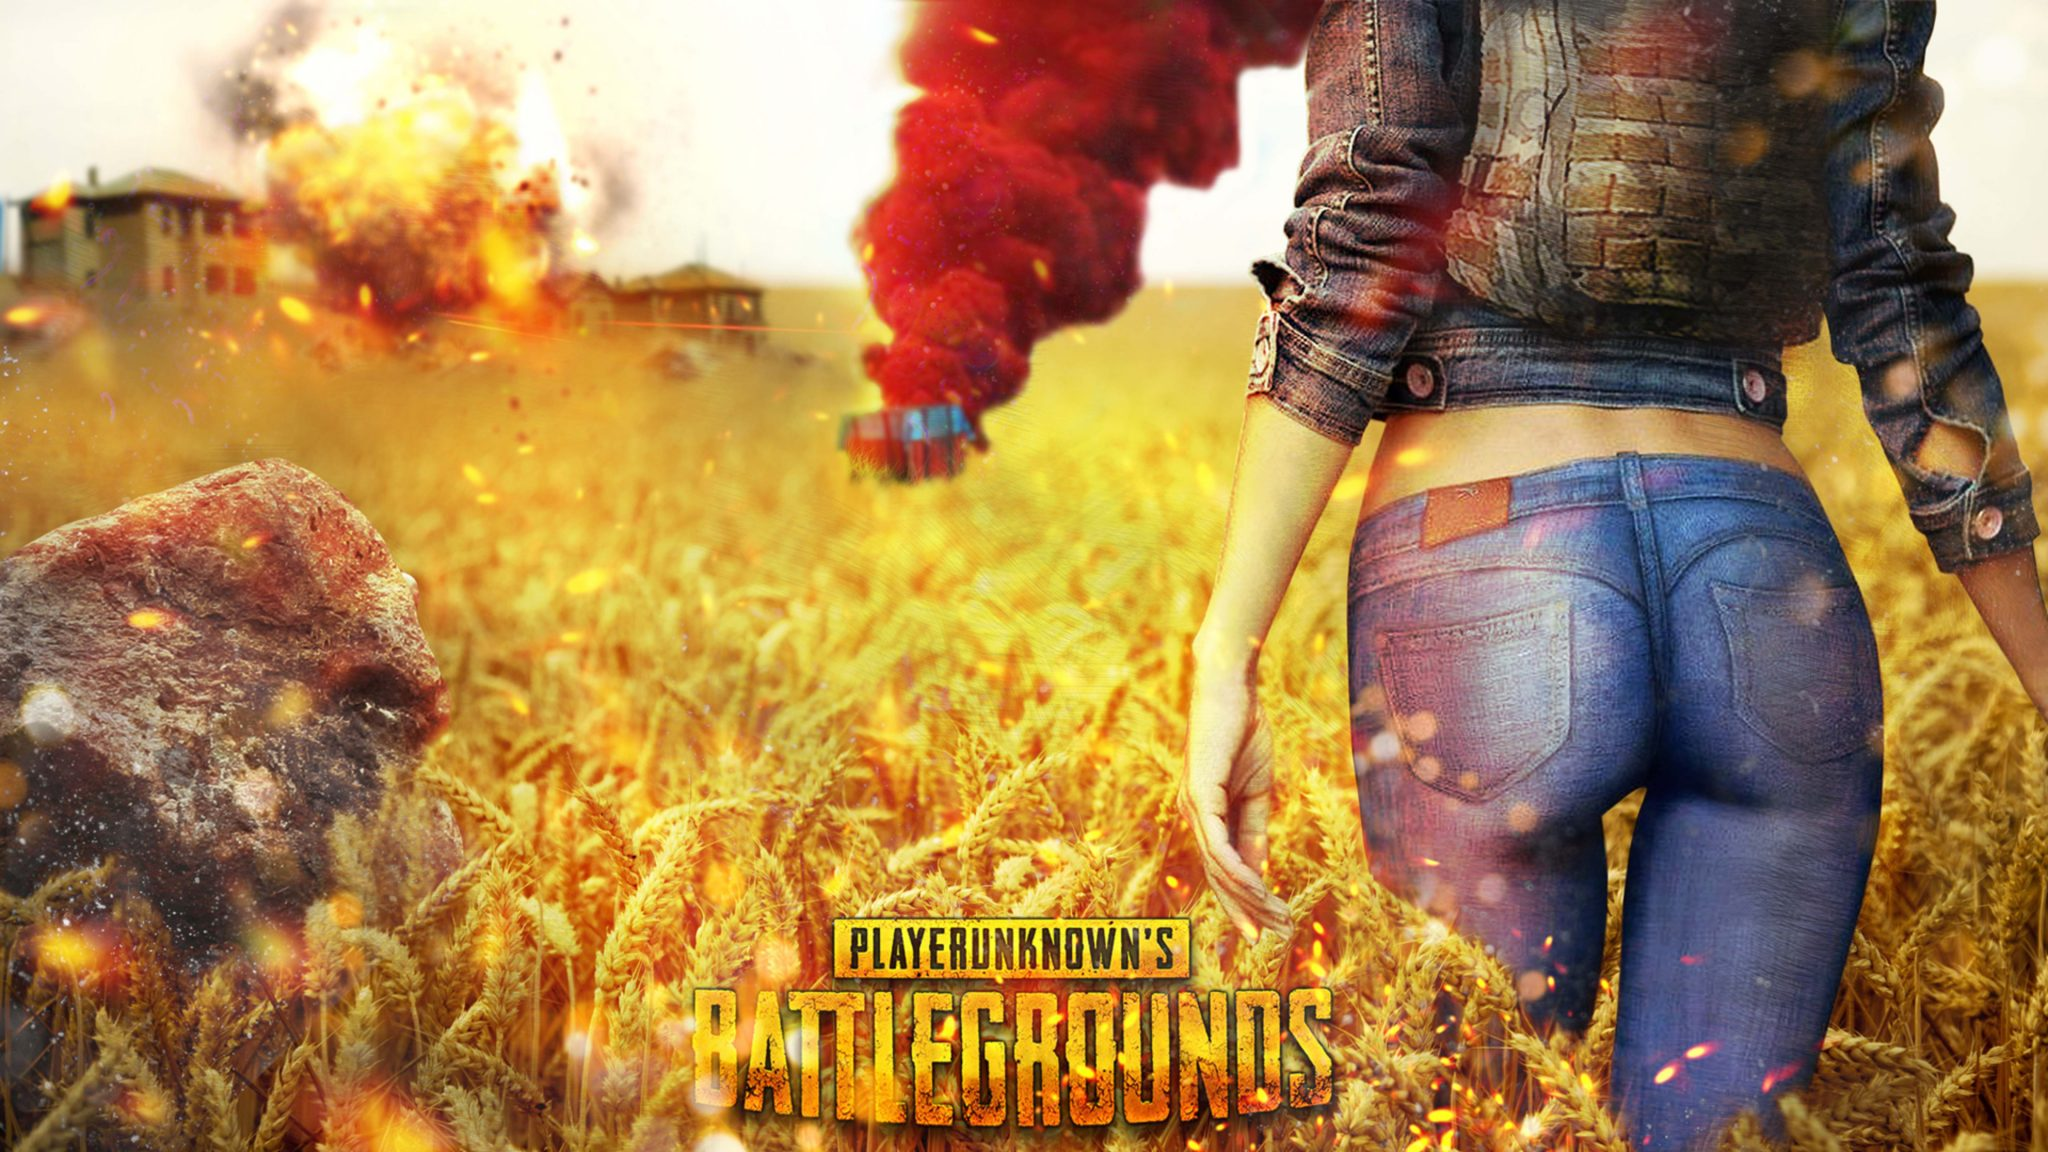 Pubg Wallpaper 4k Mobile: Playerunknowns Battlegrounds PUBG Cover 4K Wallpaper